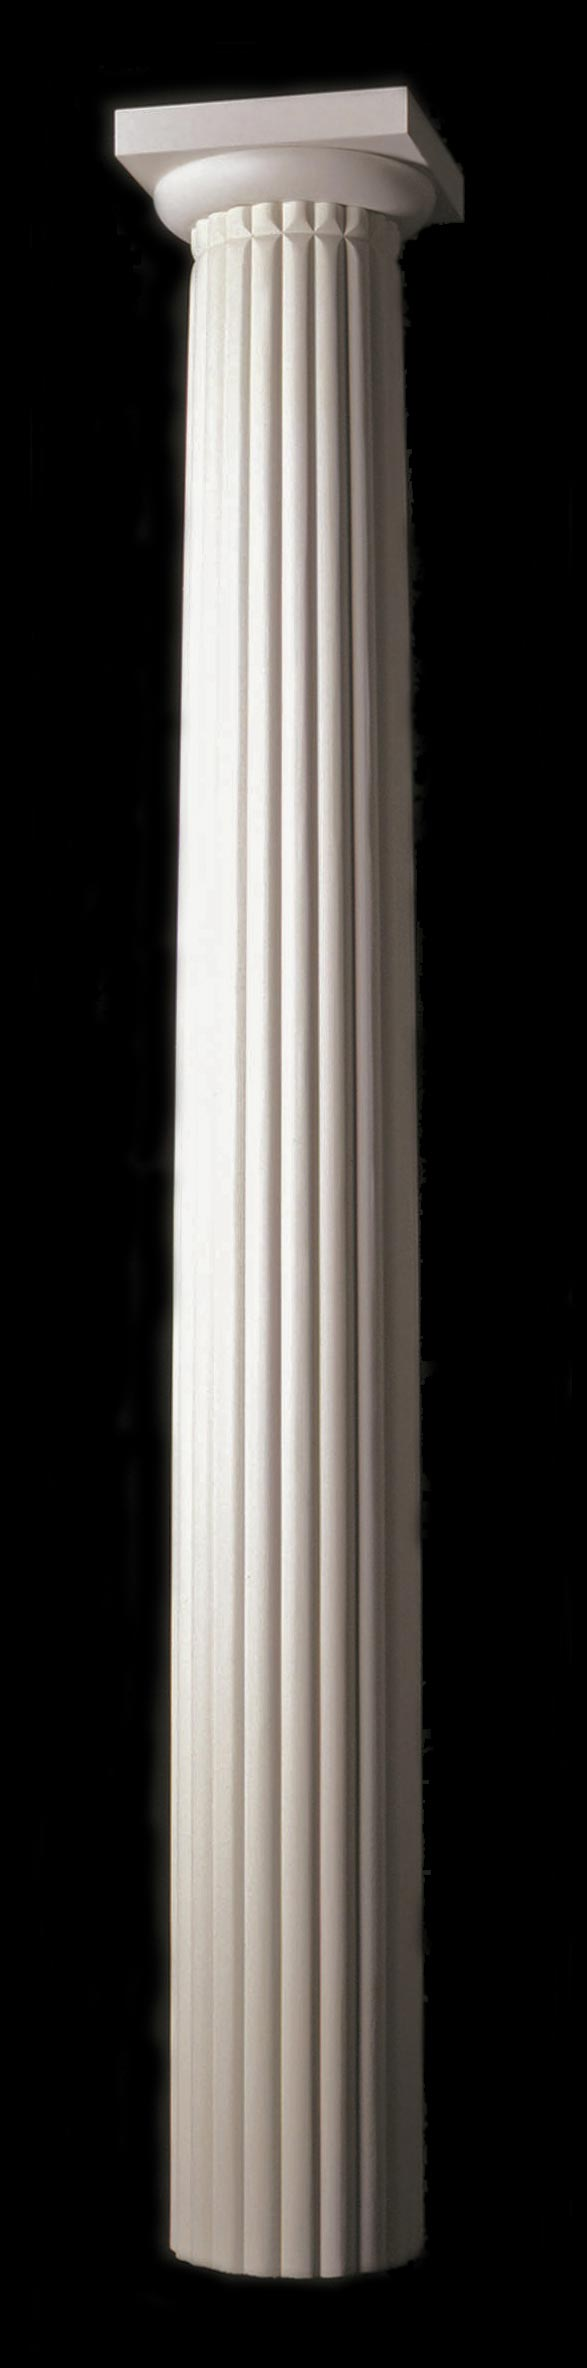 Reeded wood column fluting tuscan wood columns for Architectural wood columns